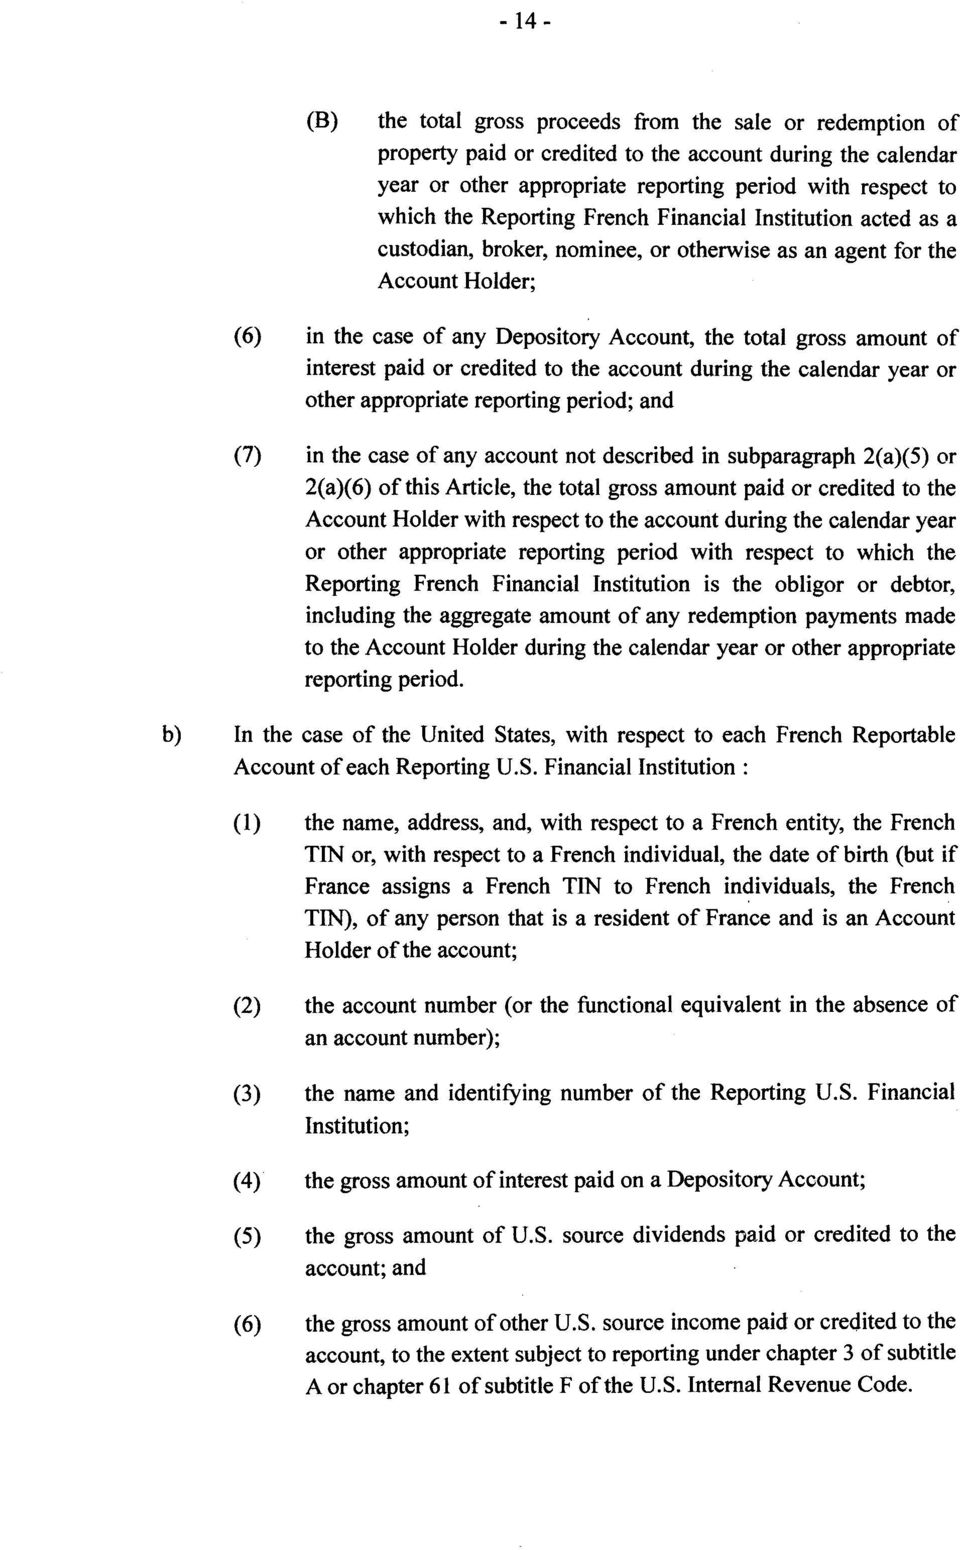 interest paid or credited to the account during the calendar year or other appropriate reporting period; and (7) in the case of any account not described in subparagraph 2(a)(5) or 2(a)(6) of this